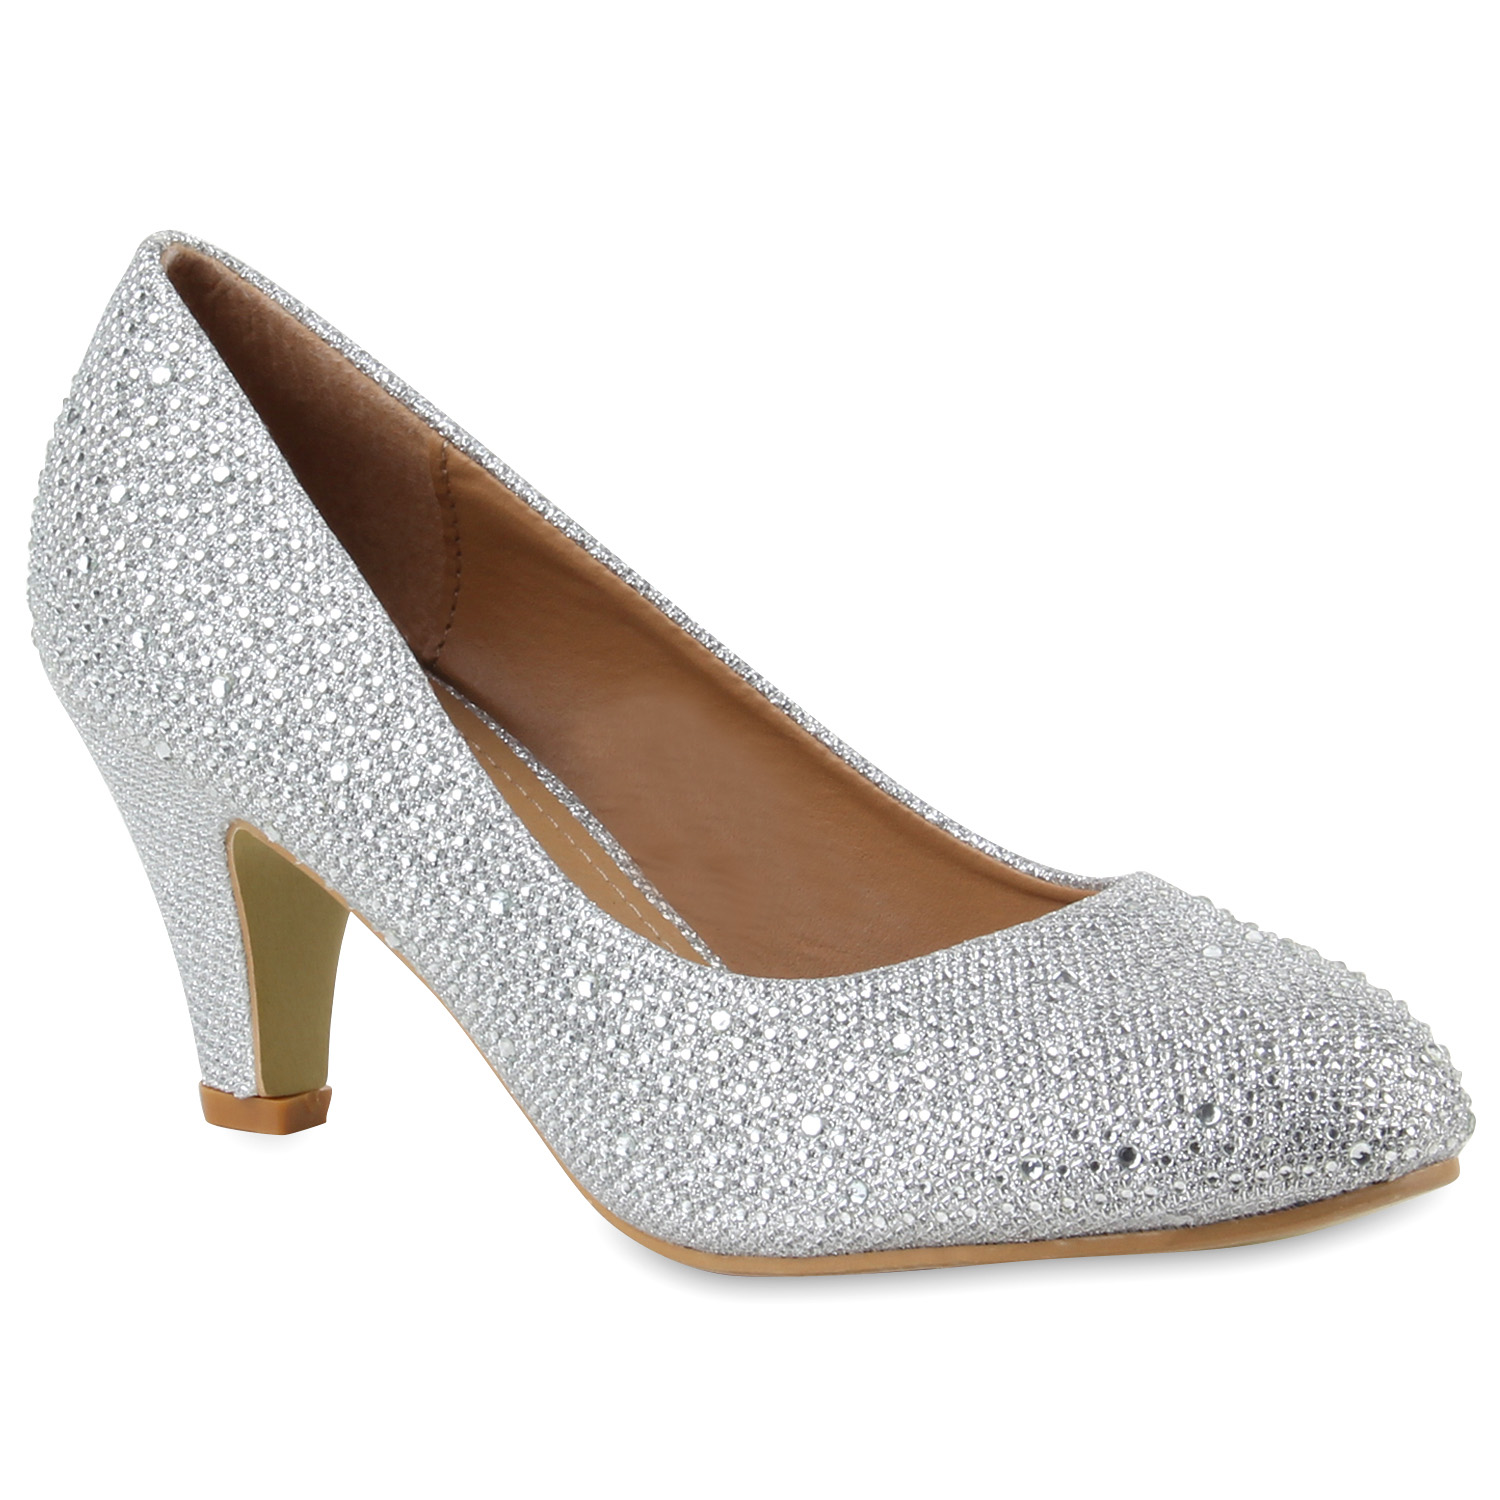 18de6e18e097ee Damen Pumps in Silber (891719-526) - stiefelparadies.de